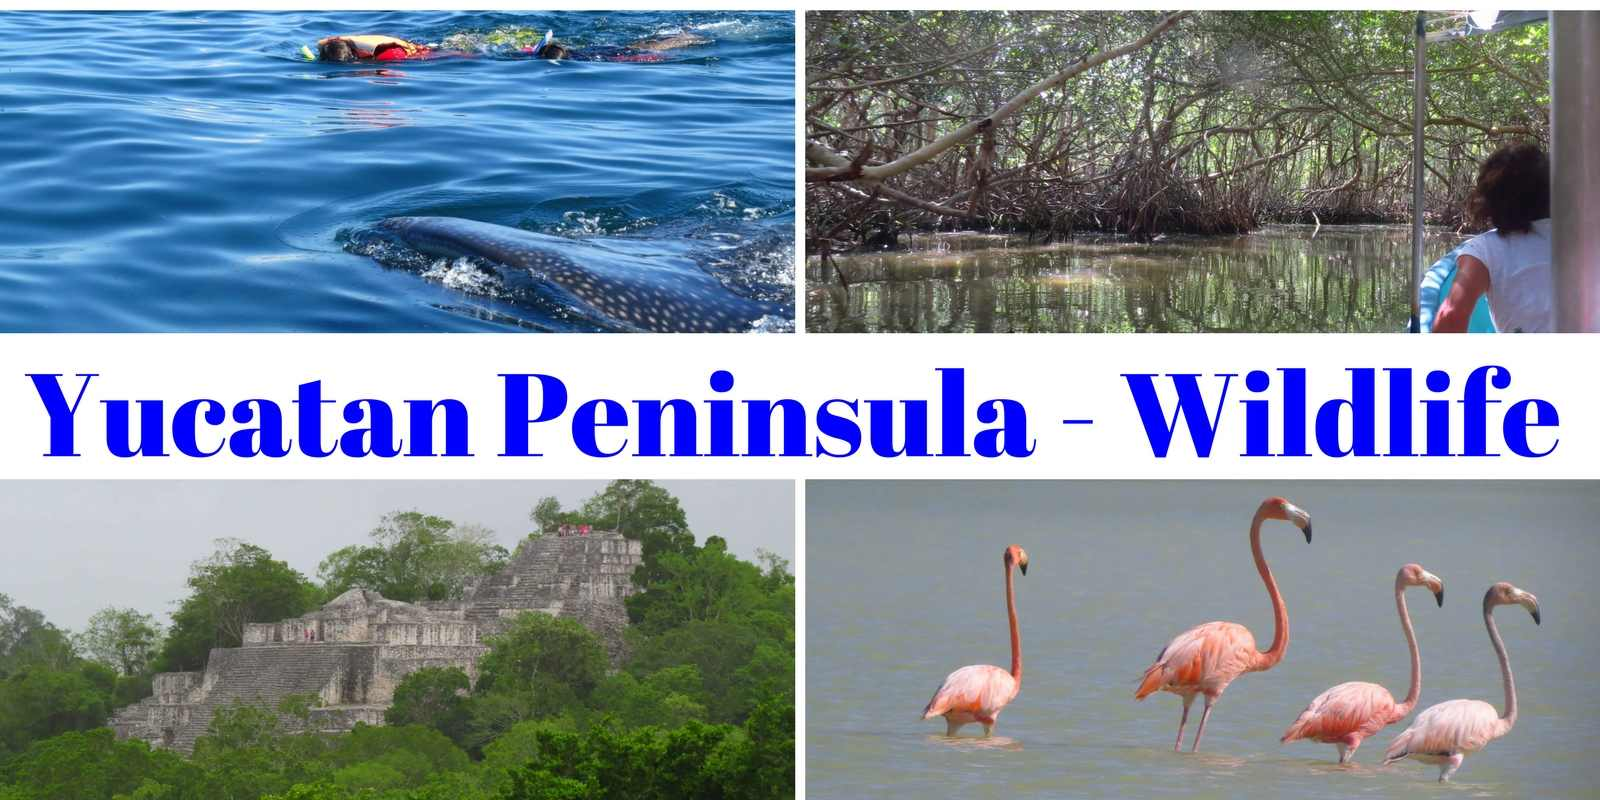 Yucatan Peninsula - Wildlife